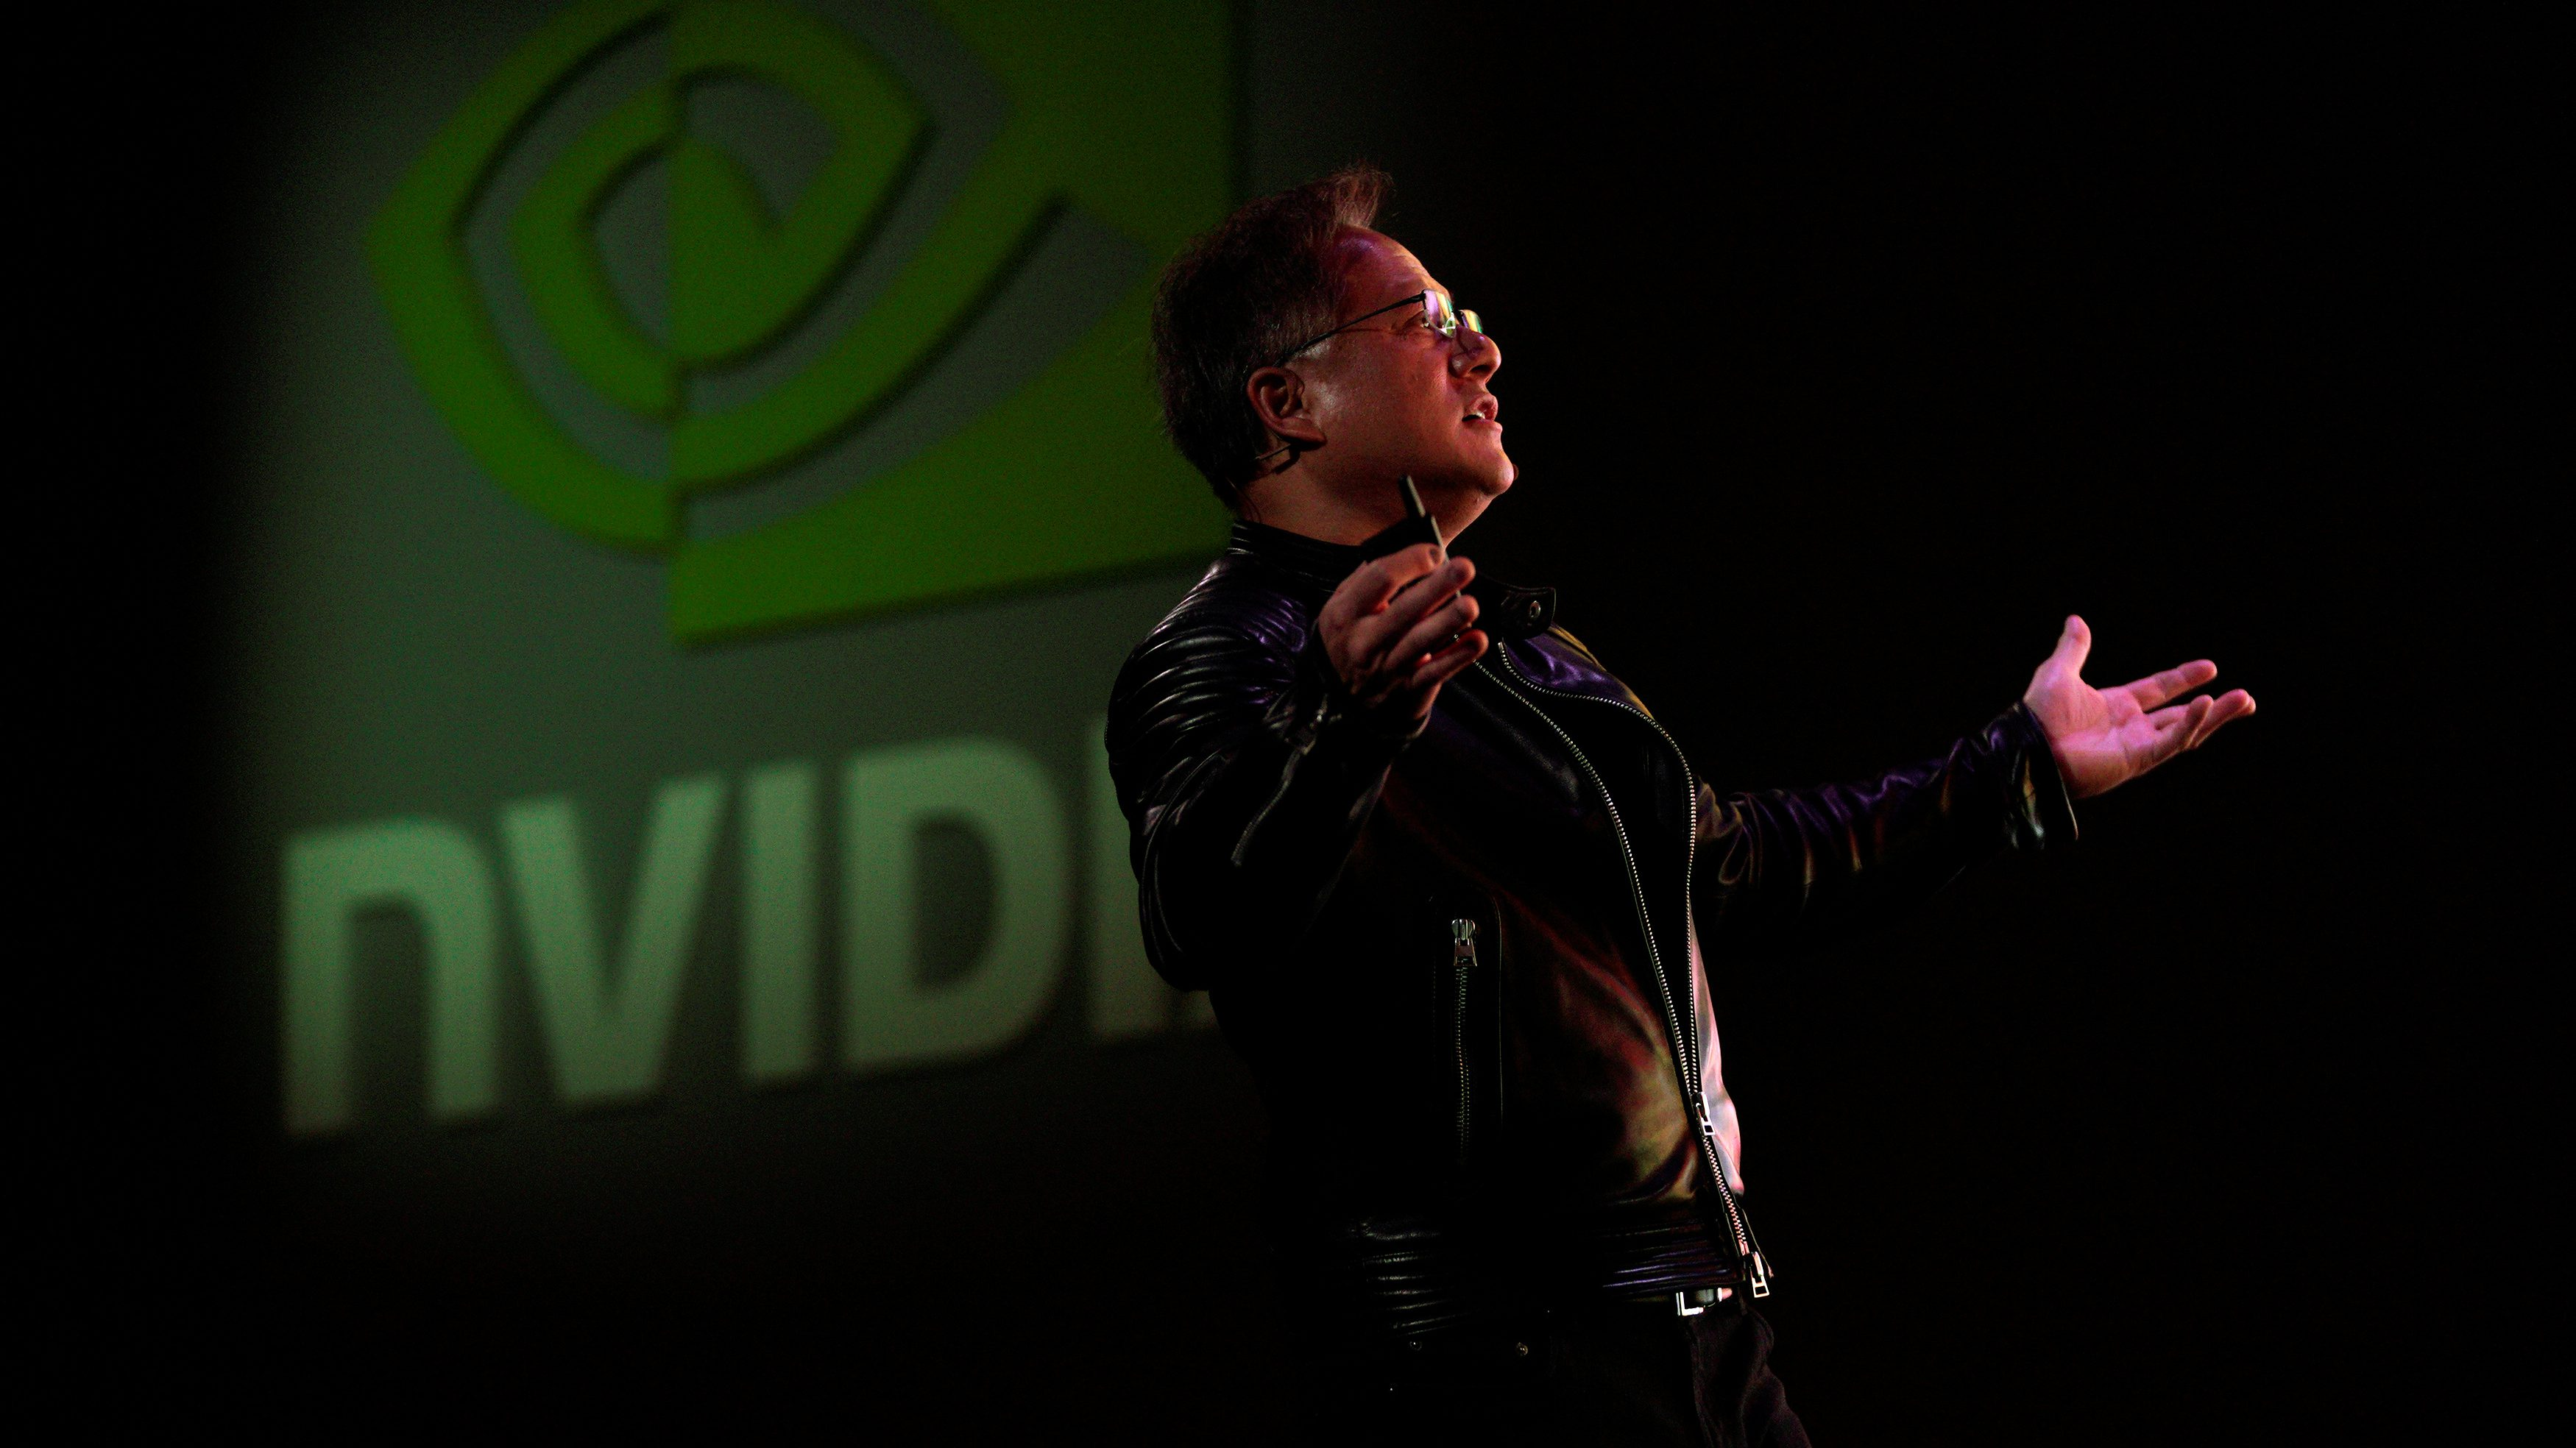 Jensen Huang, CEO of Nvidia, reacts to a video at his keynote address at CES in Las Vegas, Nevada, U.S. January 7, 2018. REUTERS/Rick Wilking - RC17B2BD1140